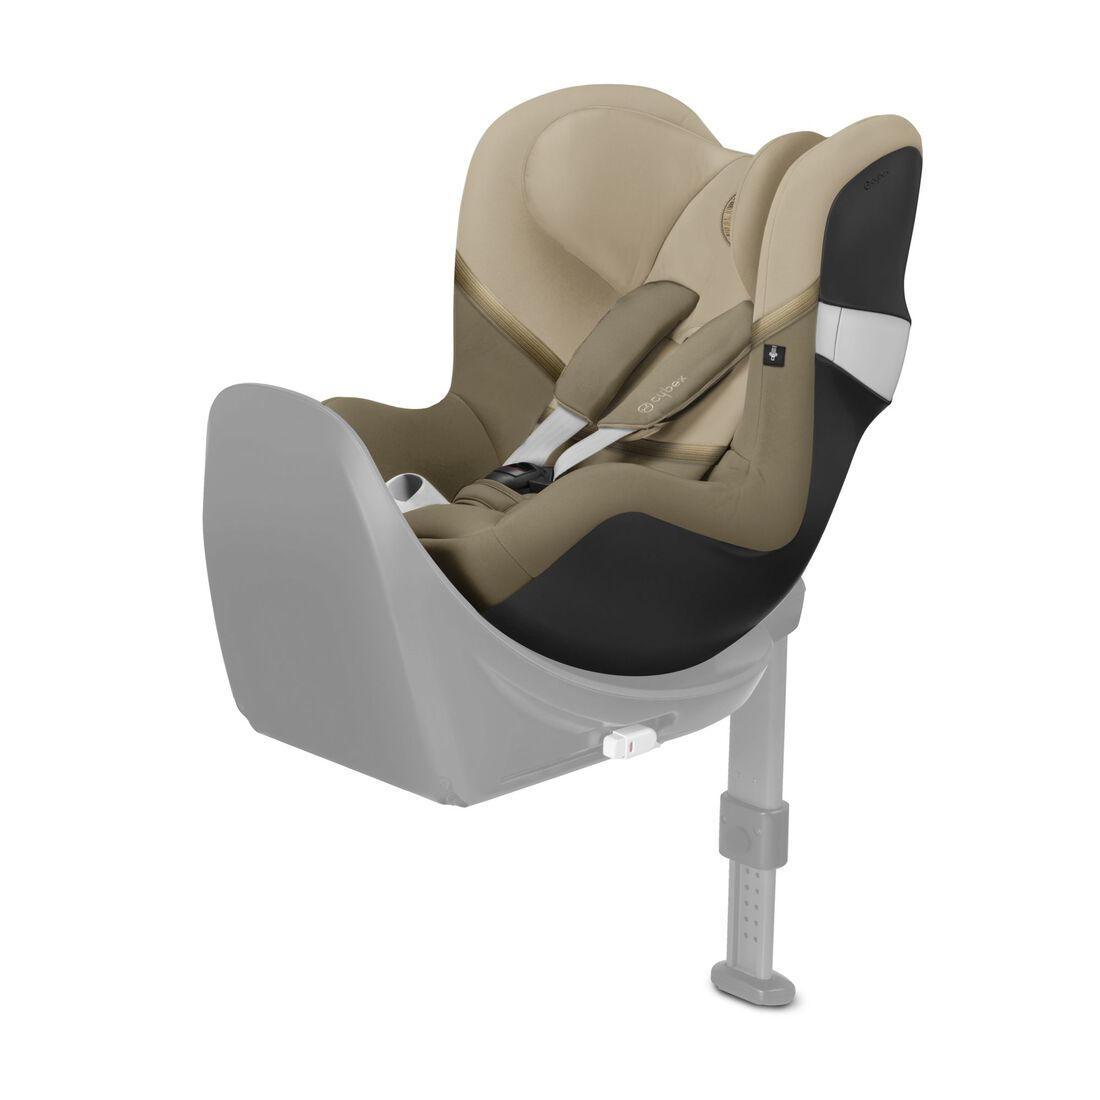 CYBEX Sirona M2 i-Size - Classic Beige in Classic Beige large image number 1